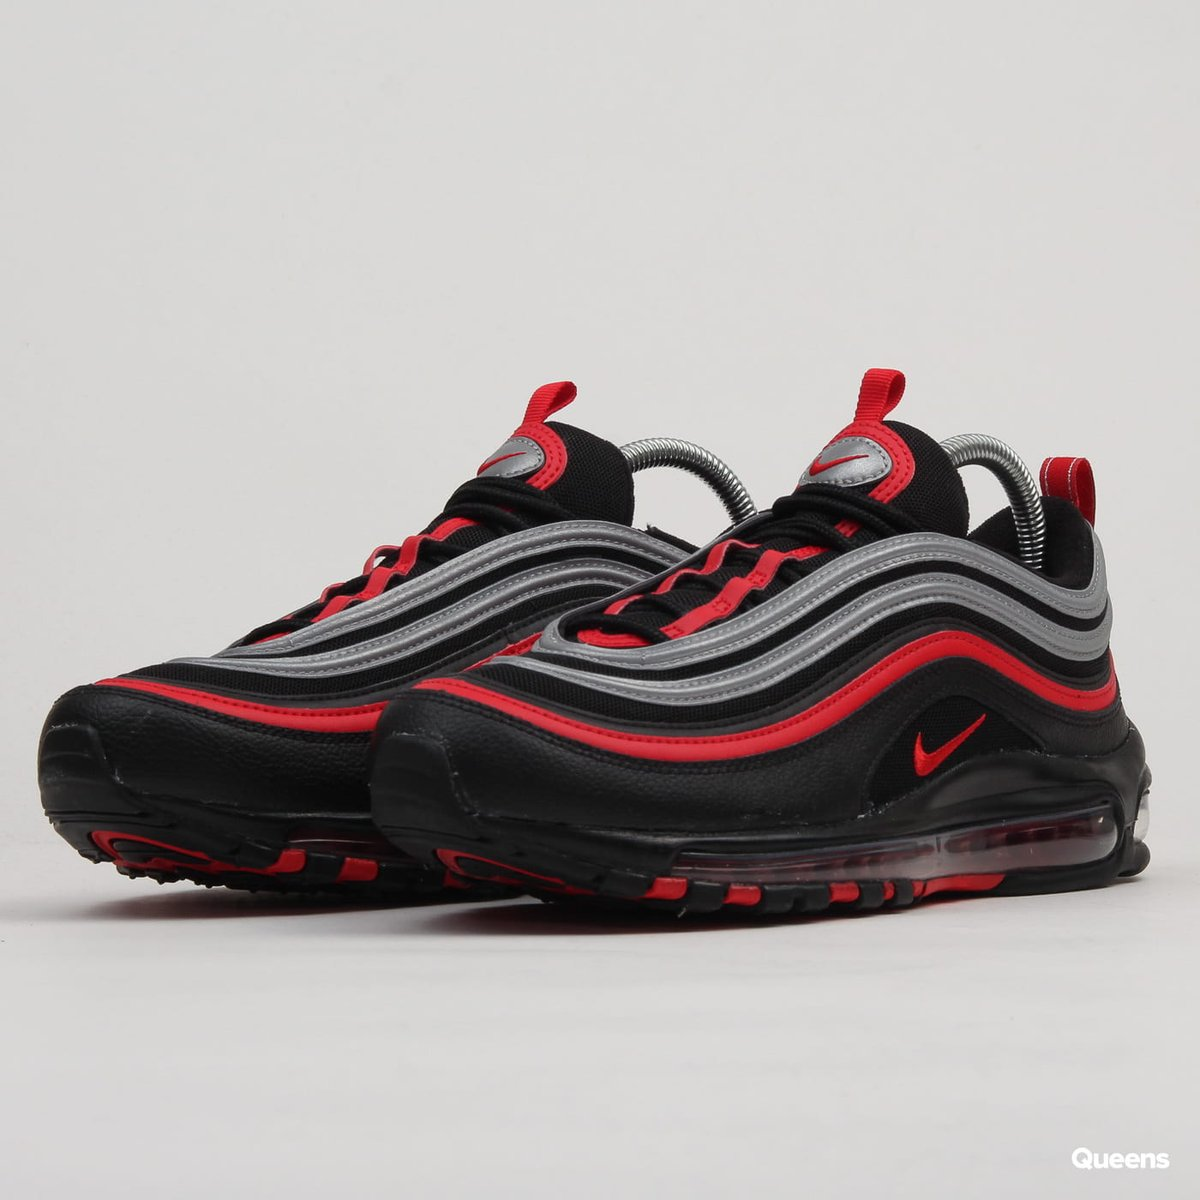 Icy Sole On Twitter On Sale Alert Ad Nike Air Max 97 Bred